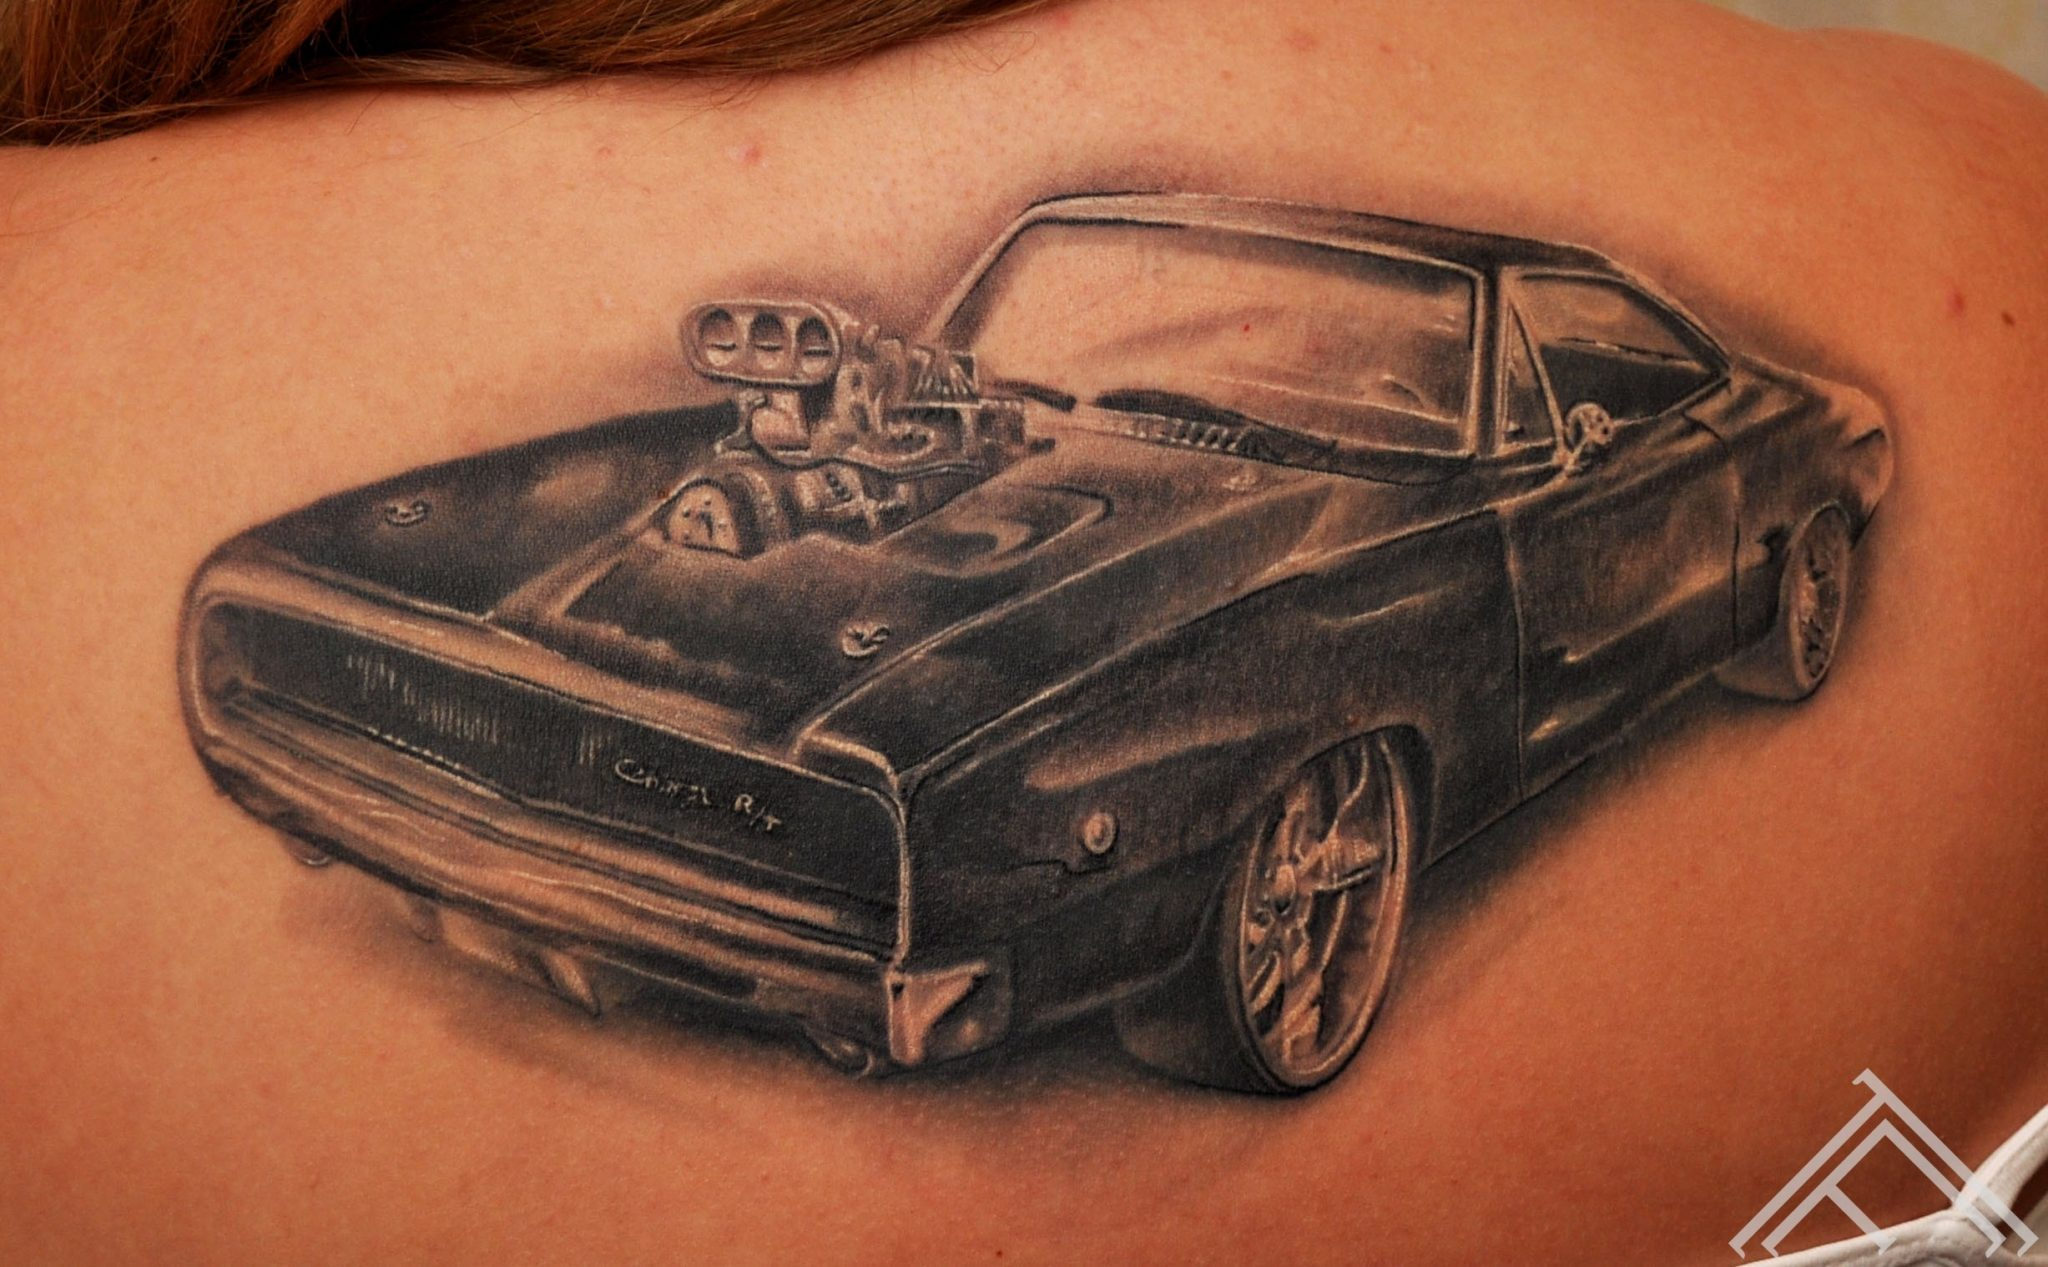 1970 charger fastfurious custom tattoo car dodge for Fast and furious tattoo